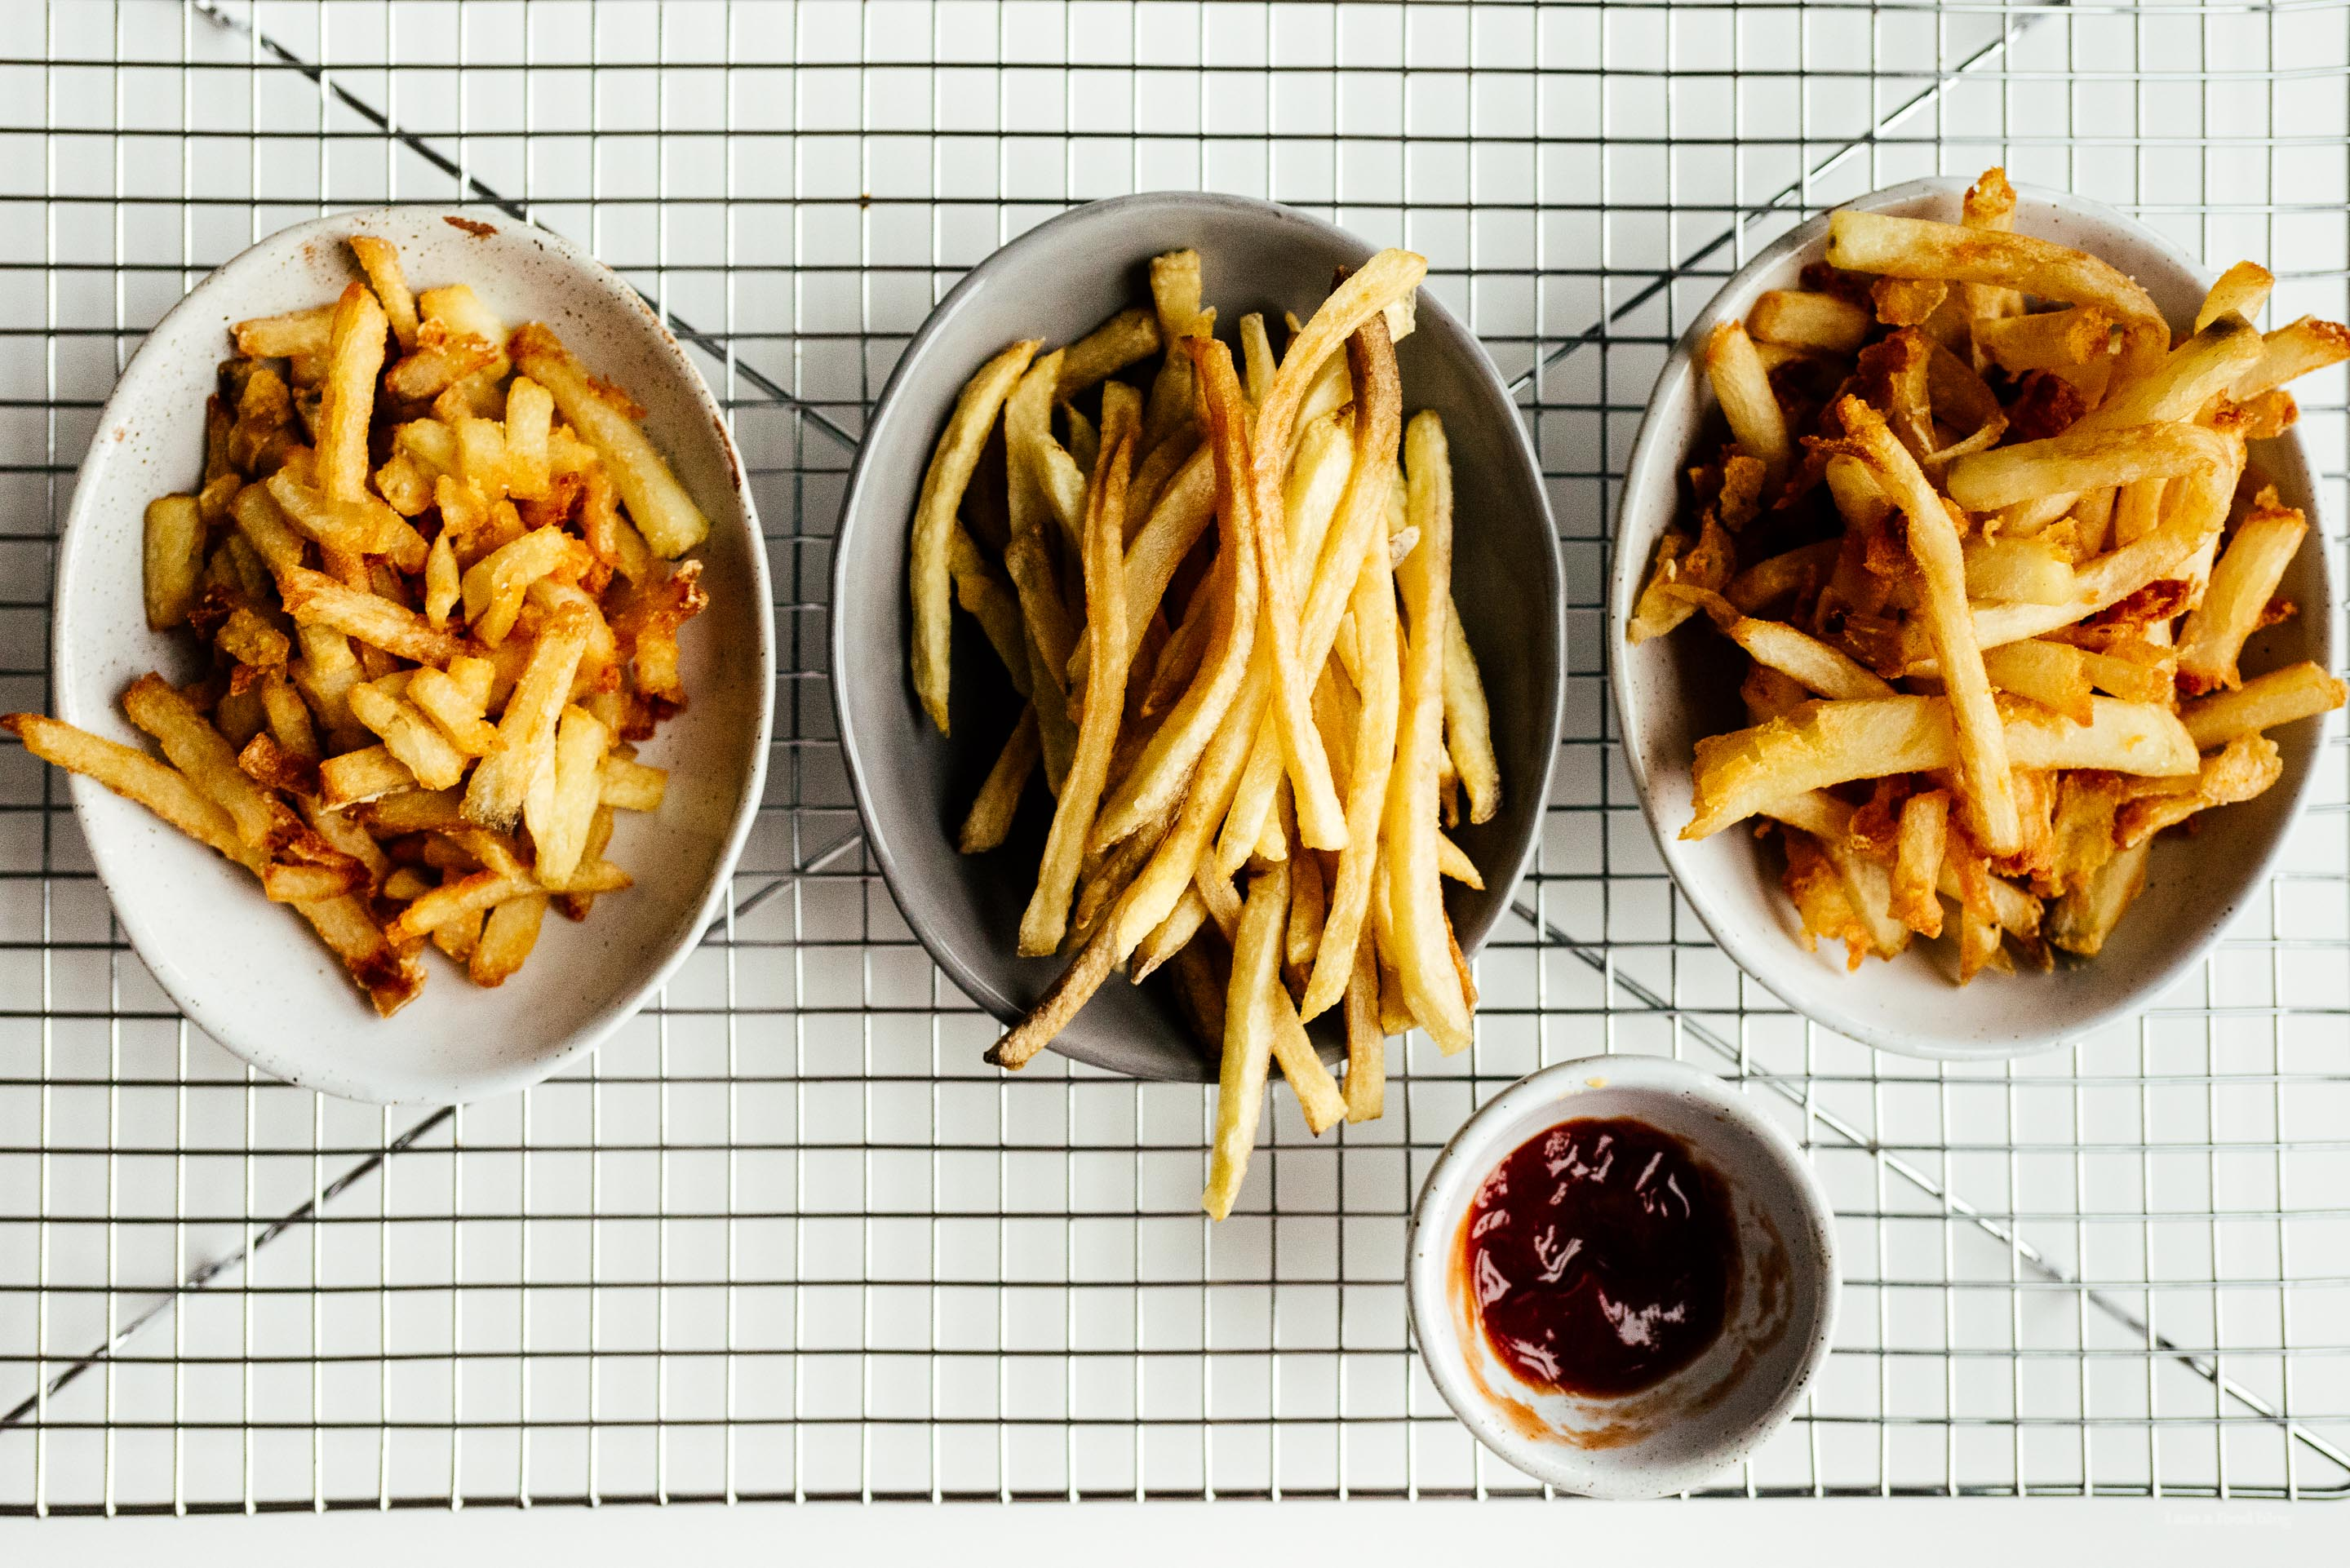 The easiest way to make french fries at home